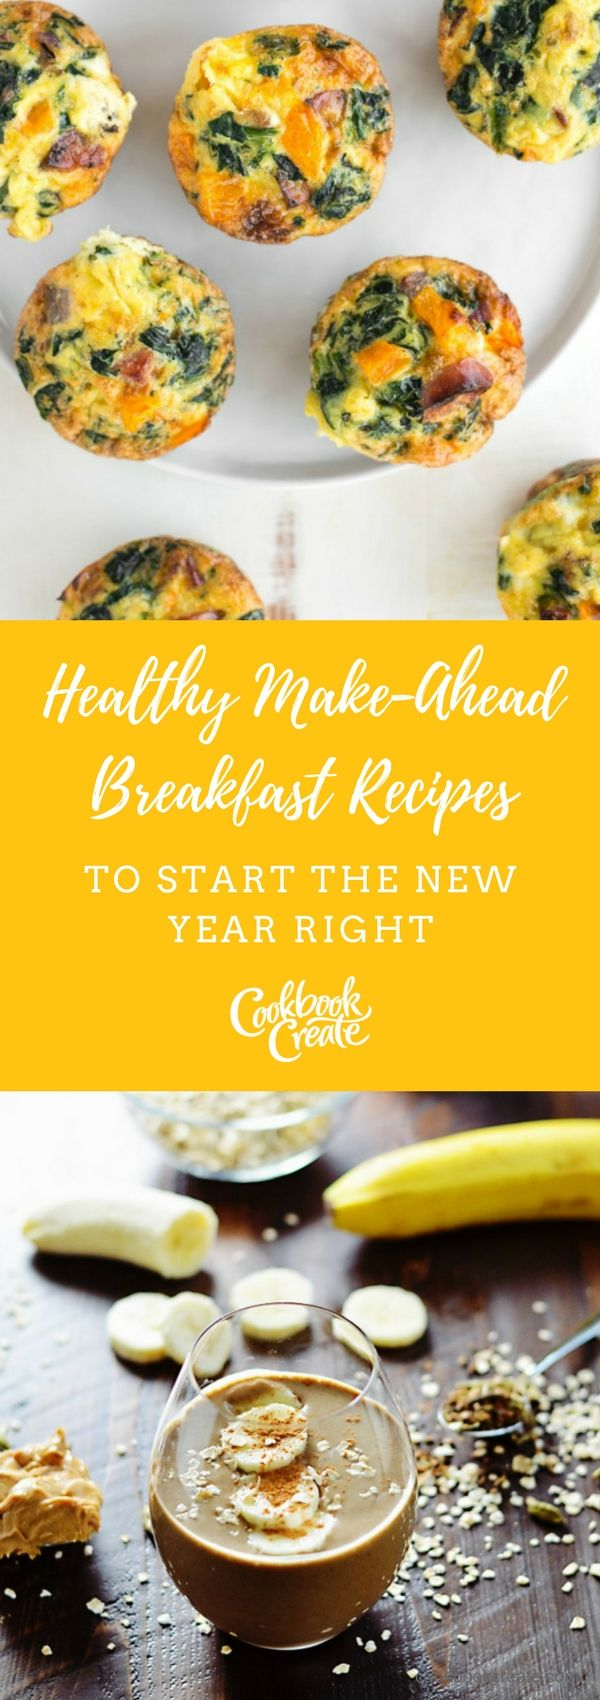 If mornings are a bit hectic, try some recipe that you can make-ahead of time! Try these great recipes out and start your meal-prep routine!